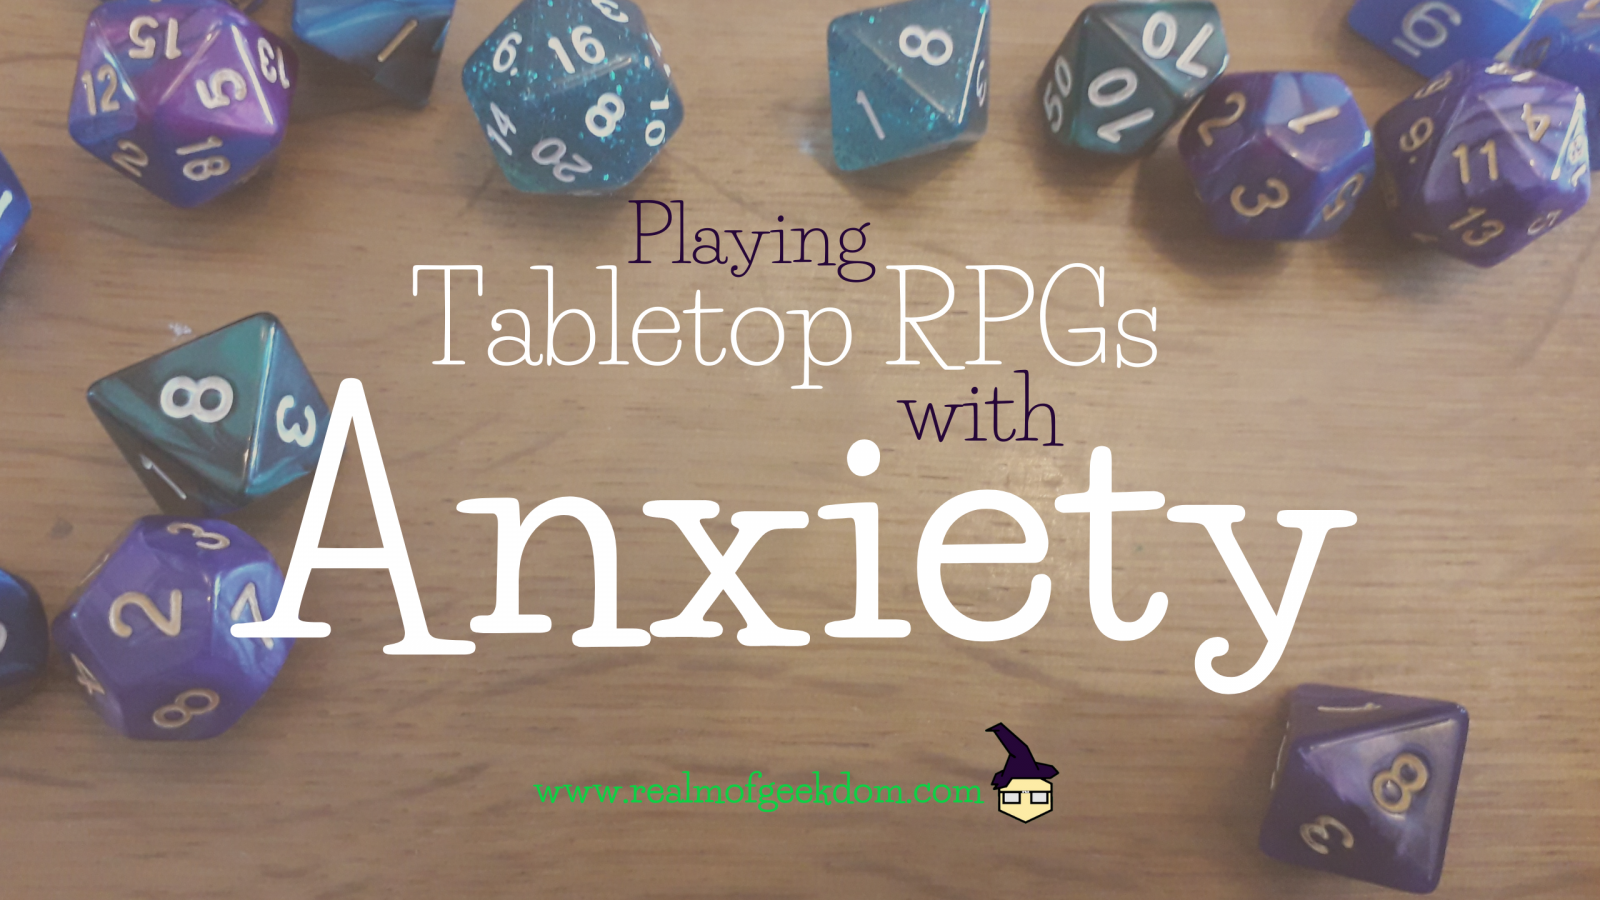 Playing RPGs with Anxiety title image